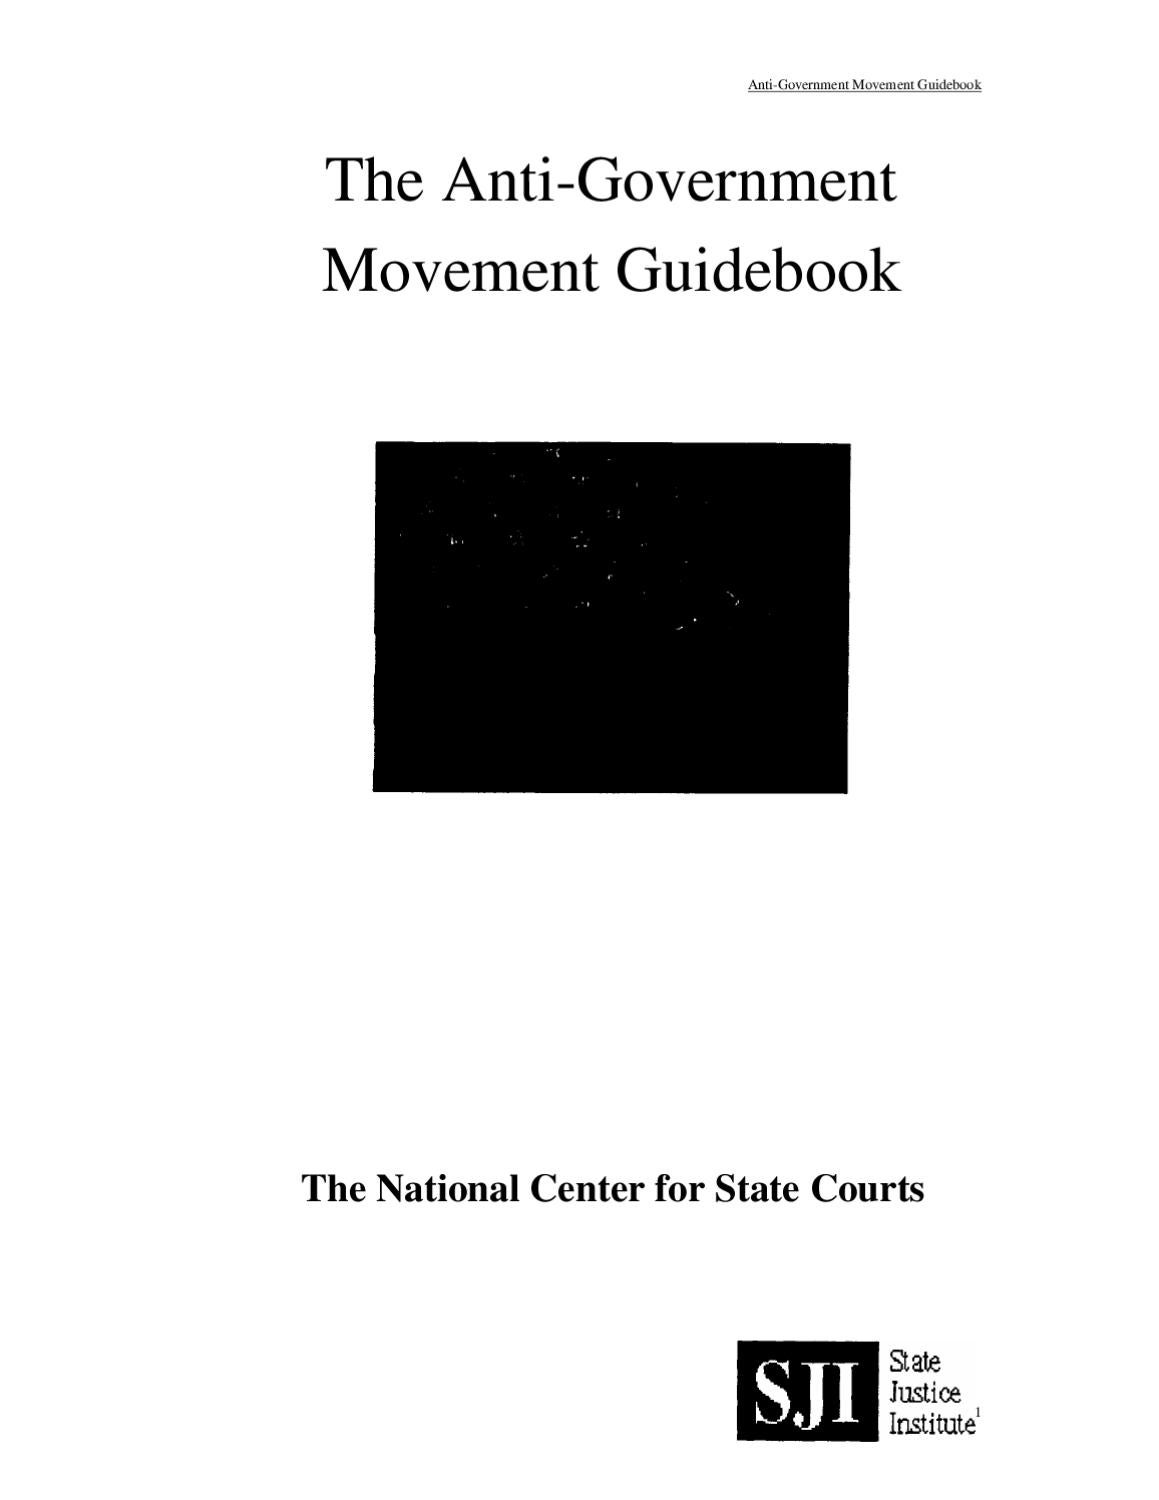 Anti-Goverment Movement Guidebook Law Handbook by Andrea